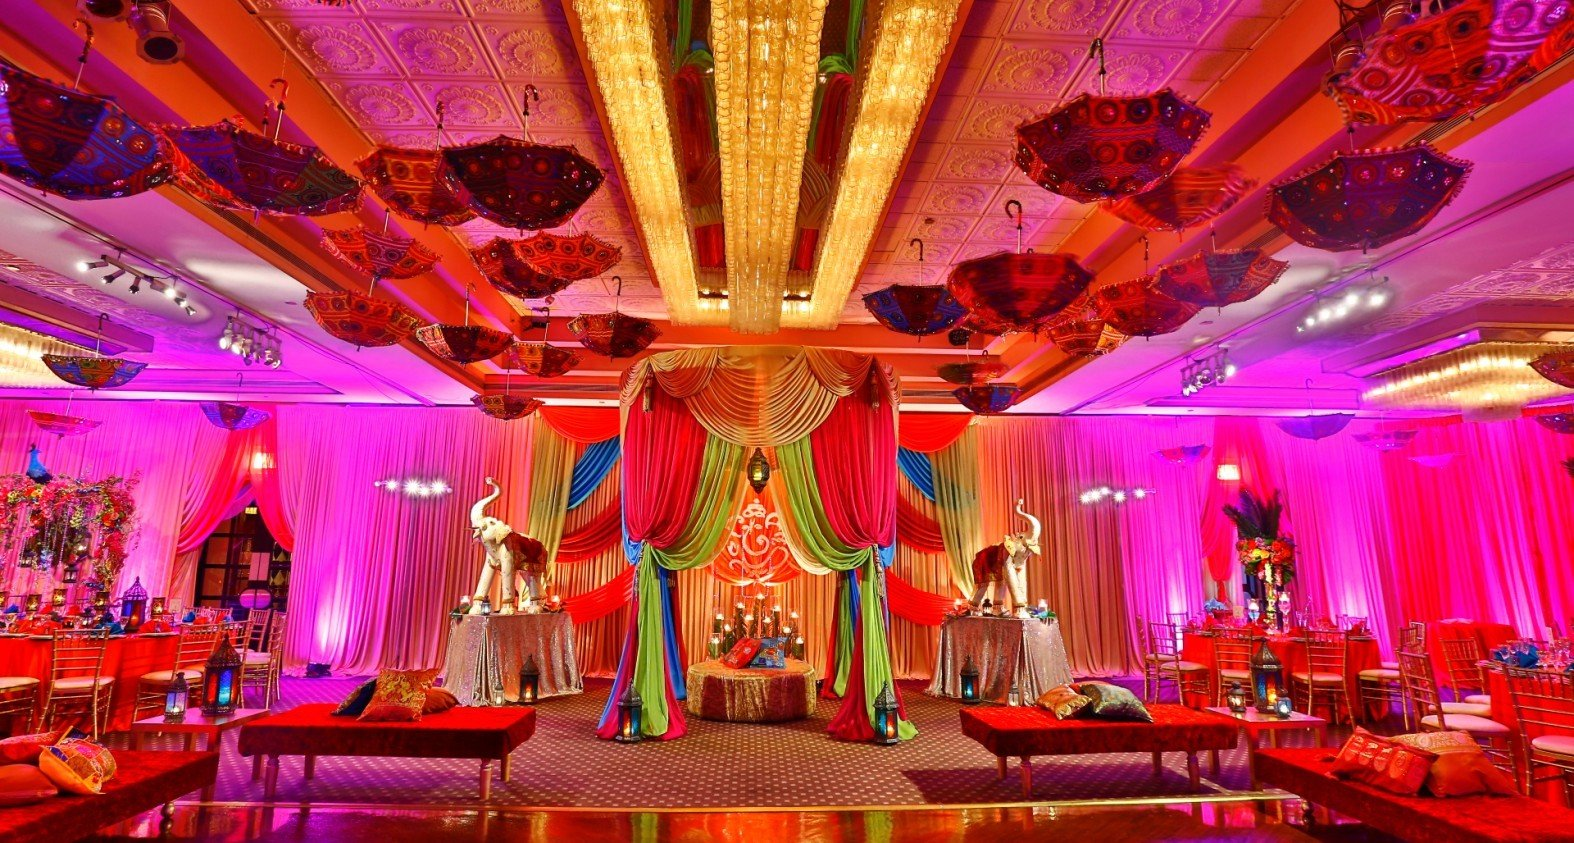 Wedding caterer planner in lucknow wedding venue in lucknow wedding planner junglespirit Images